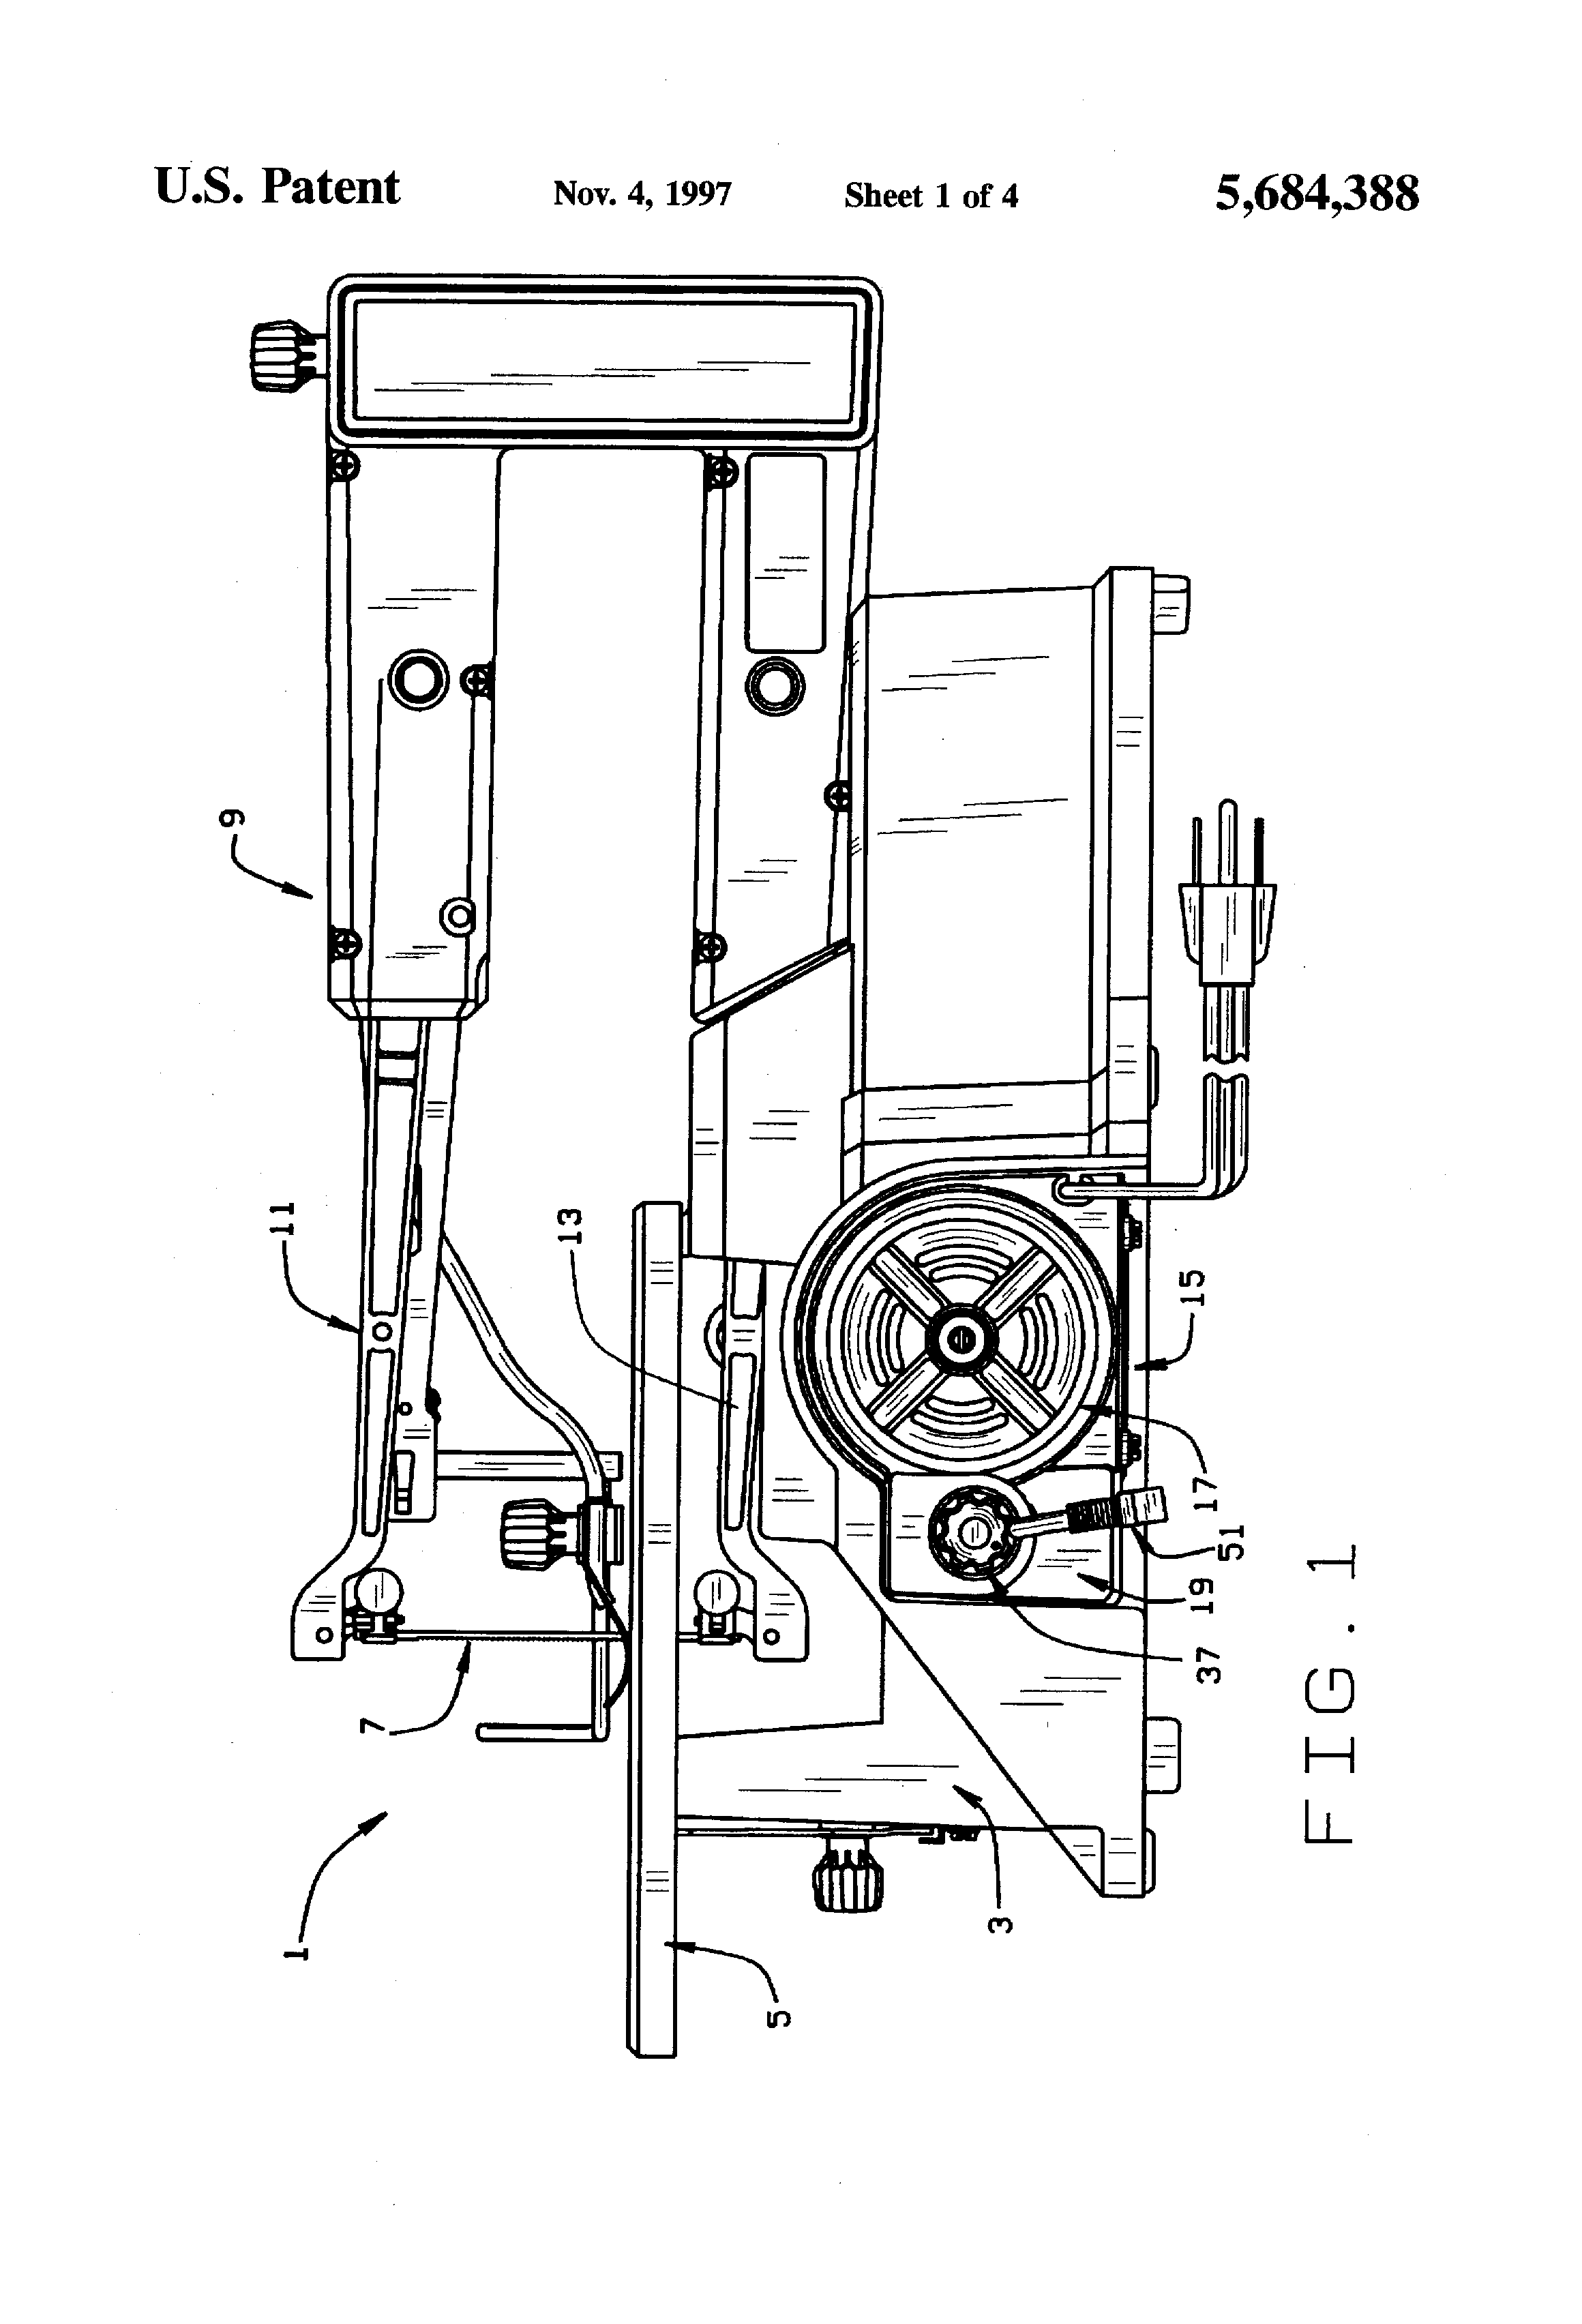 patent us5684388 - scroll saw motor  printed circuit board housing with switch lock-out